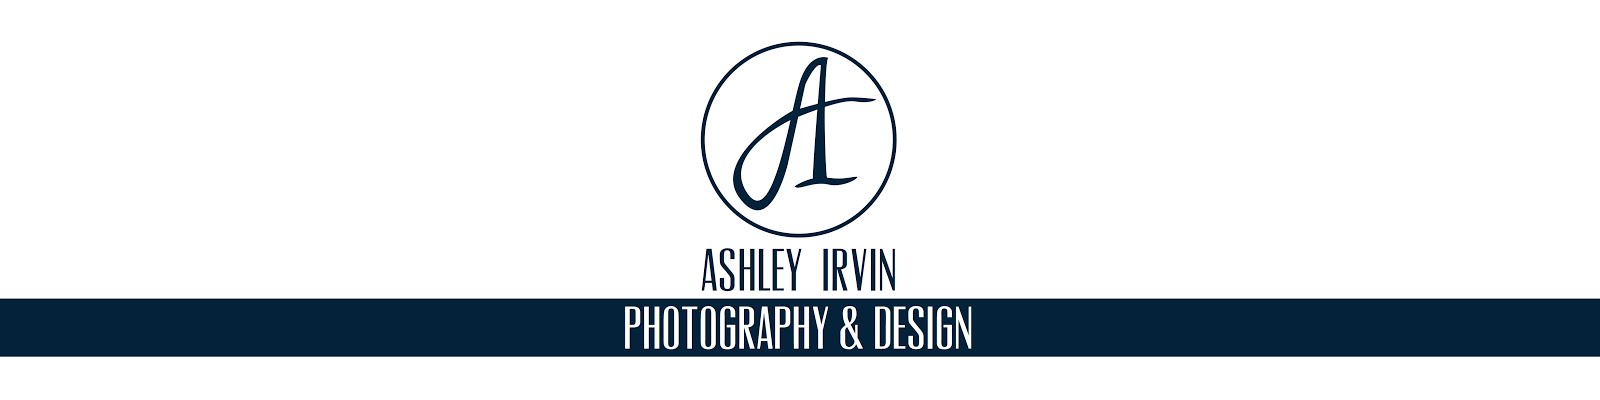 Ashley Irvin Photography